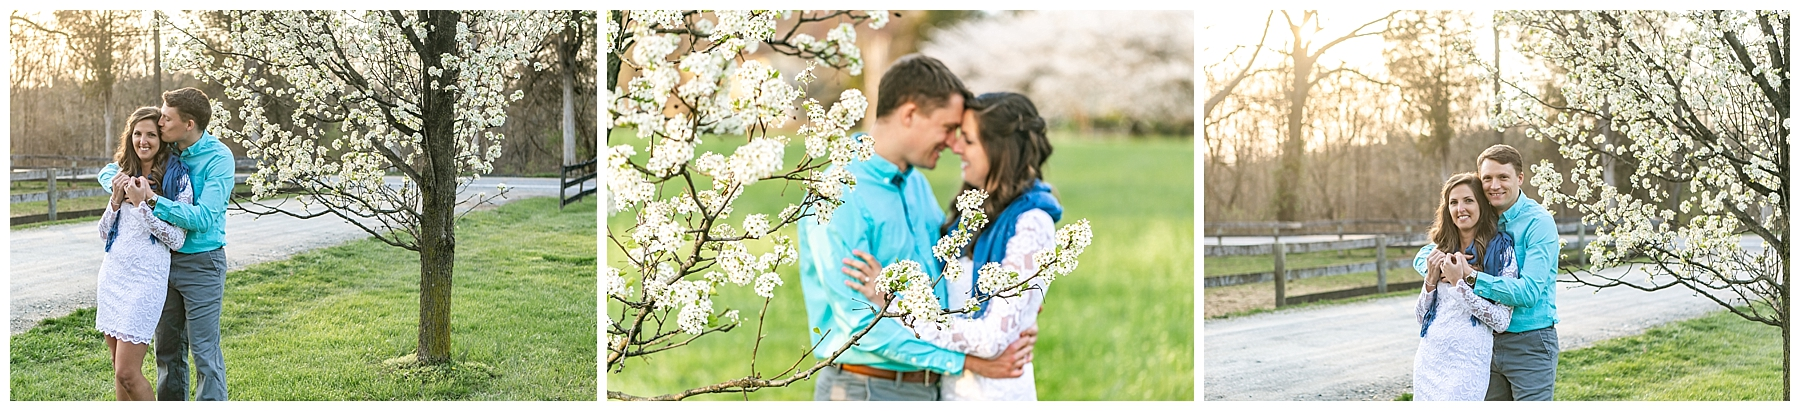 Chelsea Phil Private Estate Engagement Living Radiant Photography photos color_0029.jpg